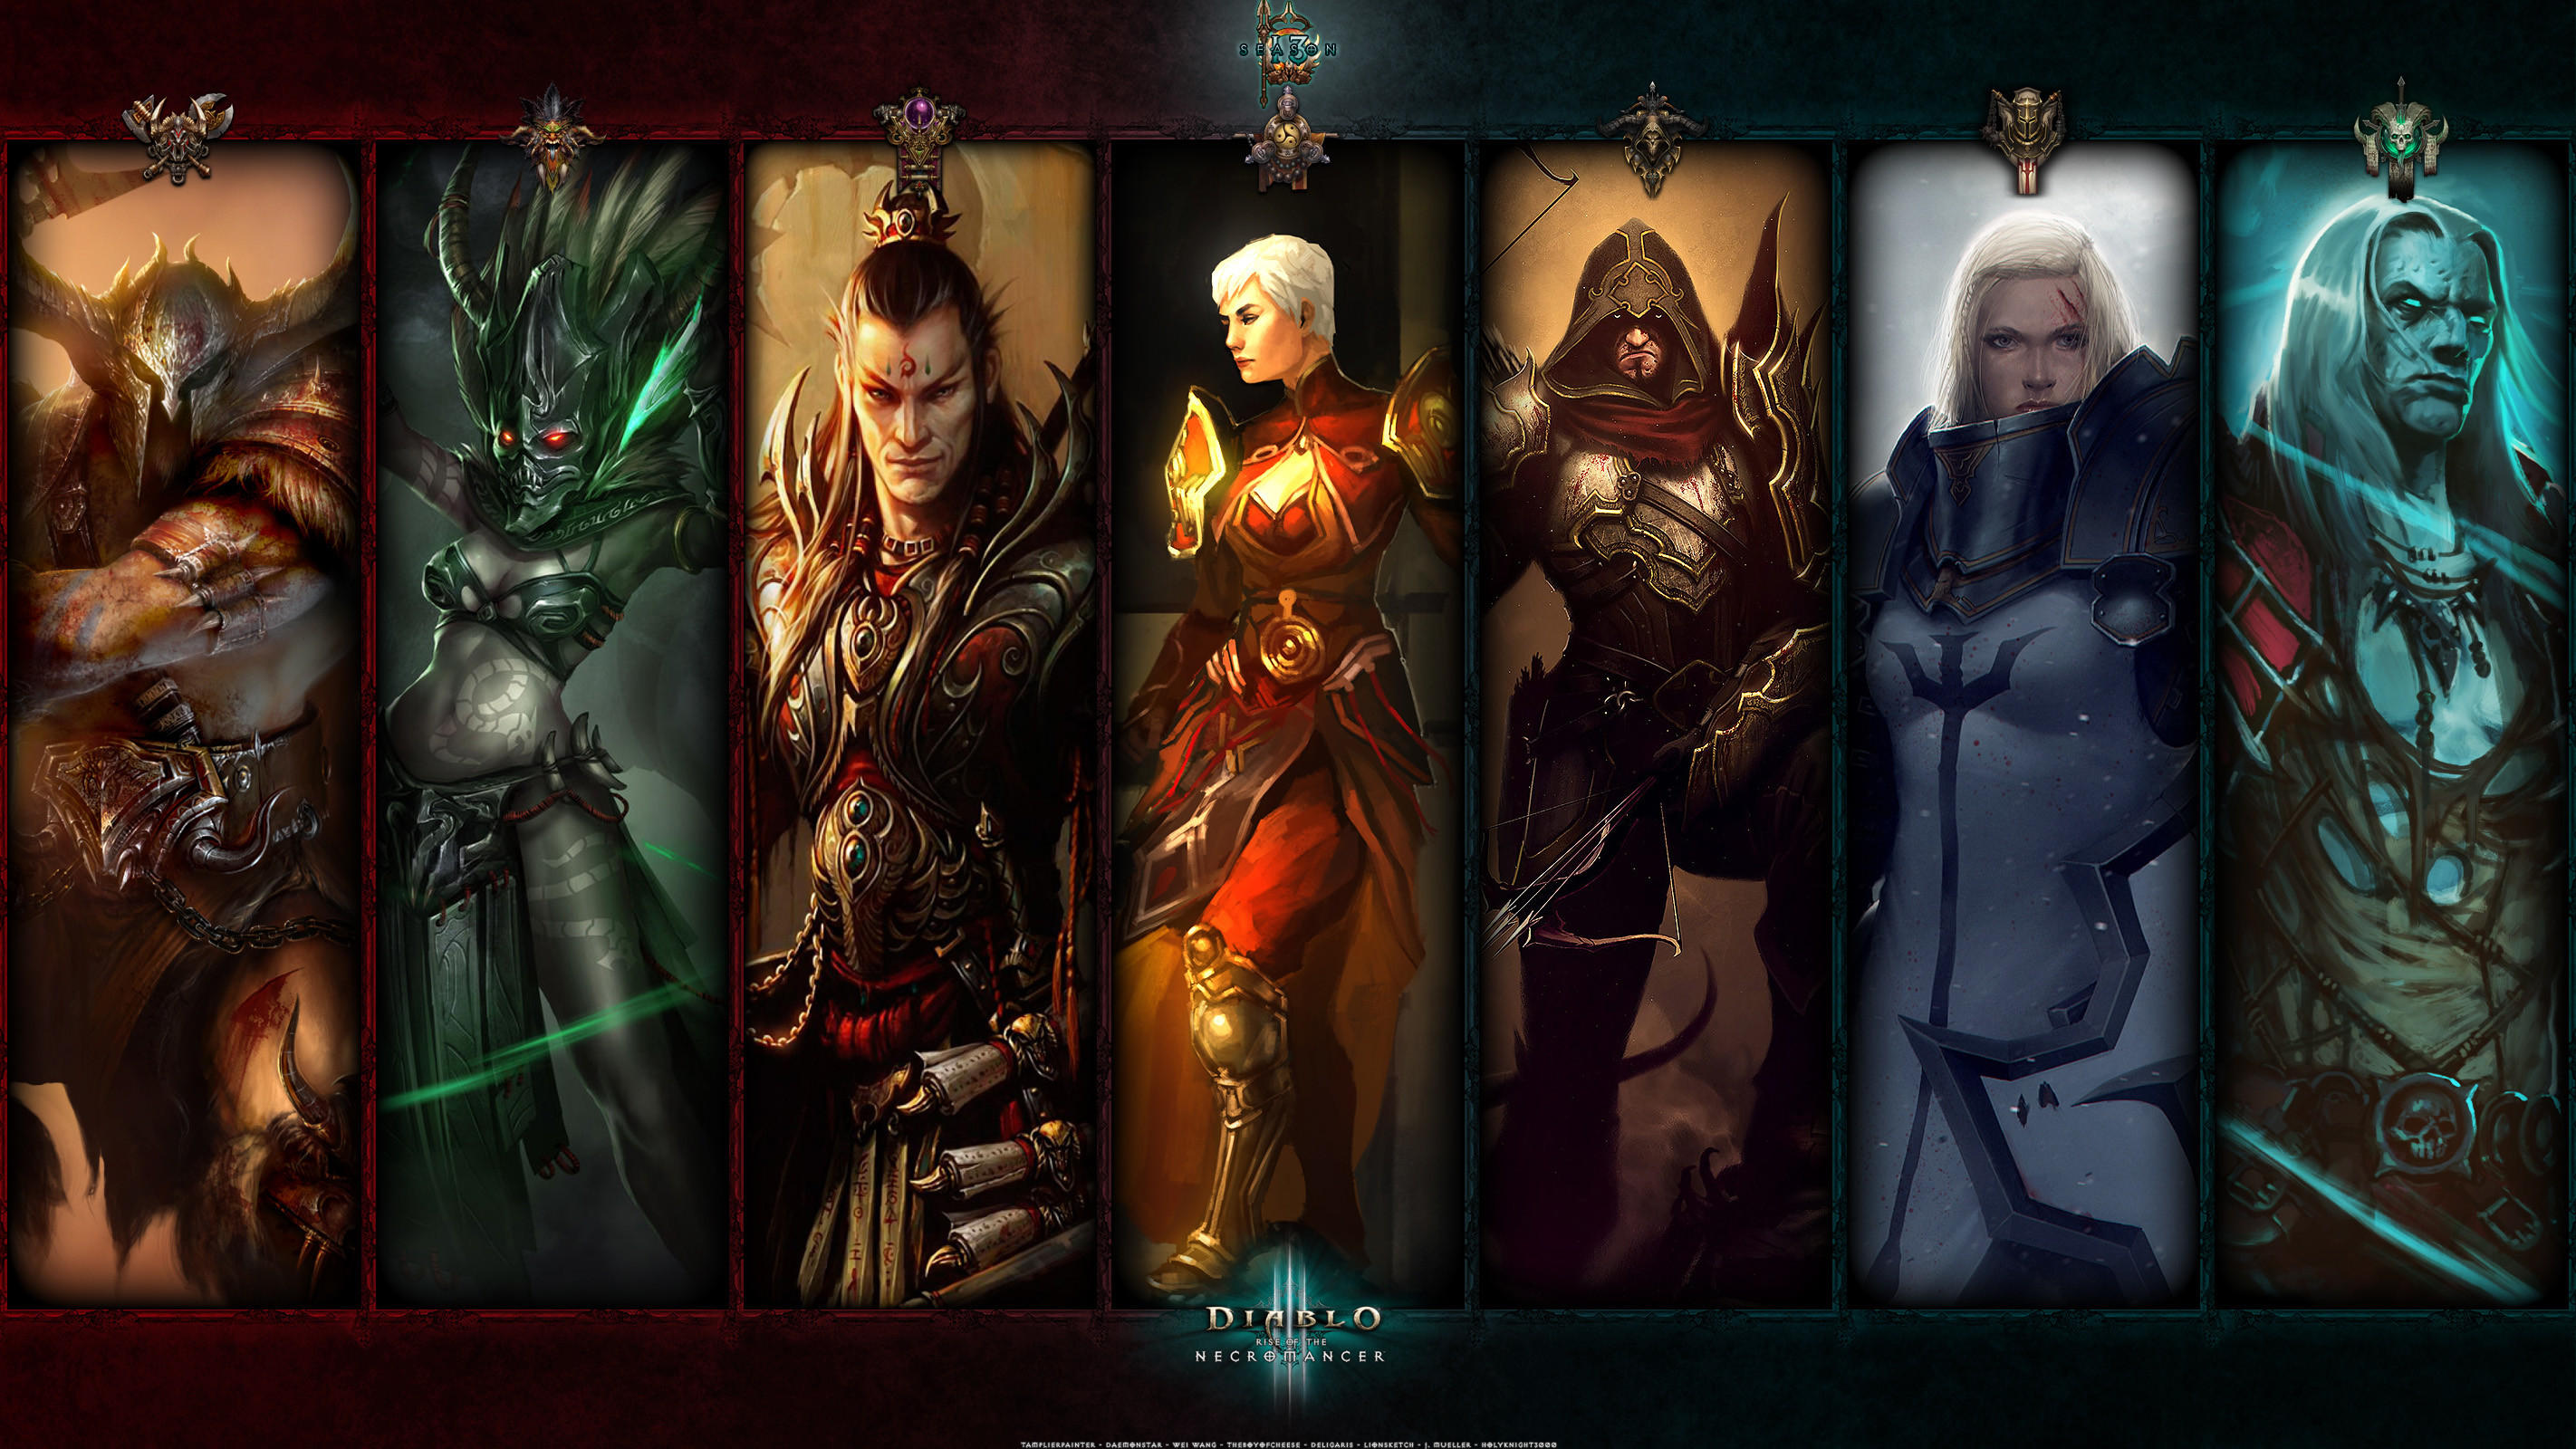 Res: 2844x1600, Season 13: For the Balance II - Diablo Wallpaper and OS Art - Fan Art -  DiabloFans Forums - Forums - DiabloFans